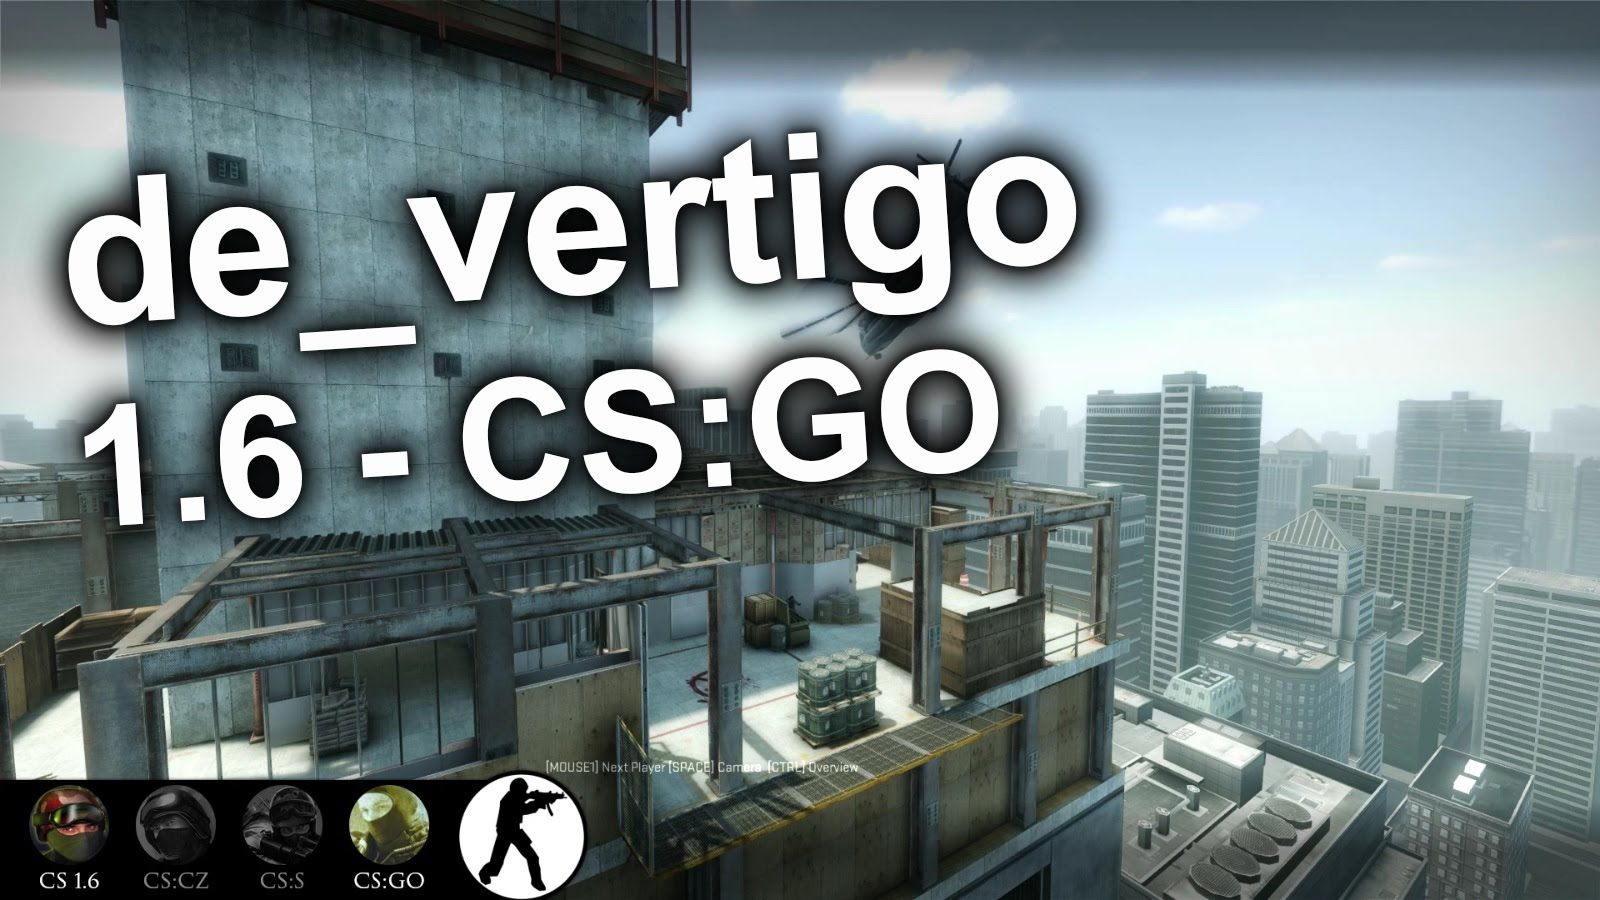 de_vertigo - 1.6 VS CS:GO remake #games #globaloffensive #CSGO #counterstrike #hltv #CS #steam #Valve #djswat #CS16